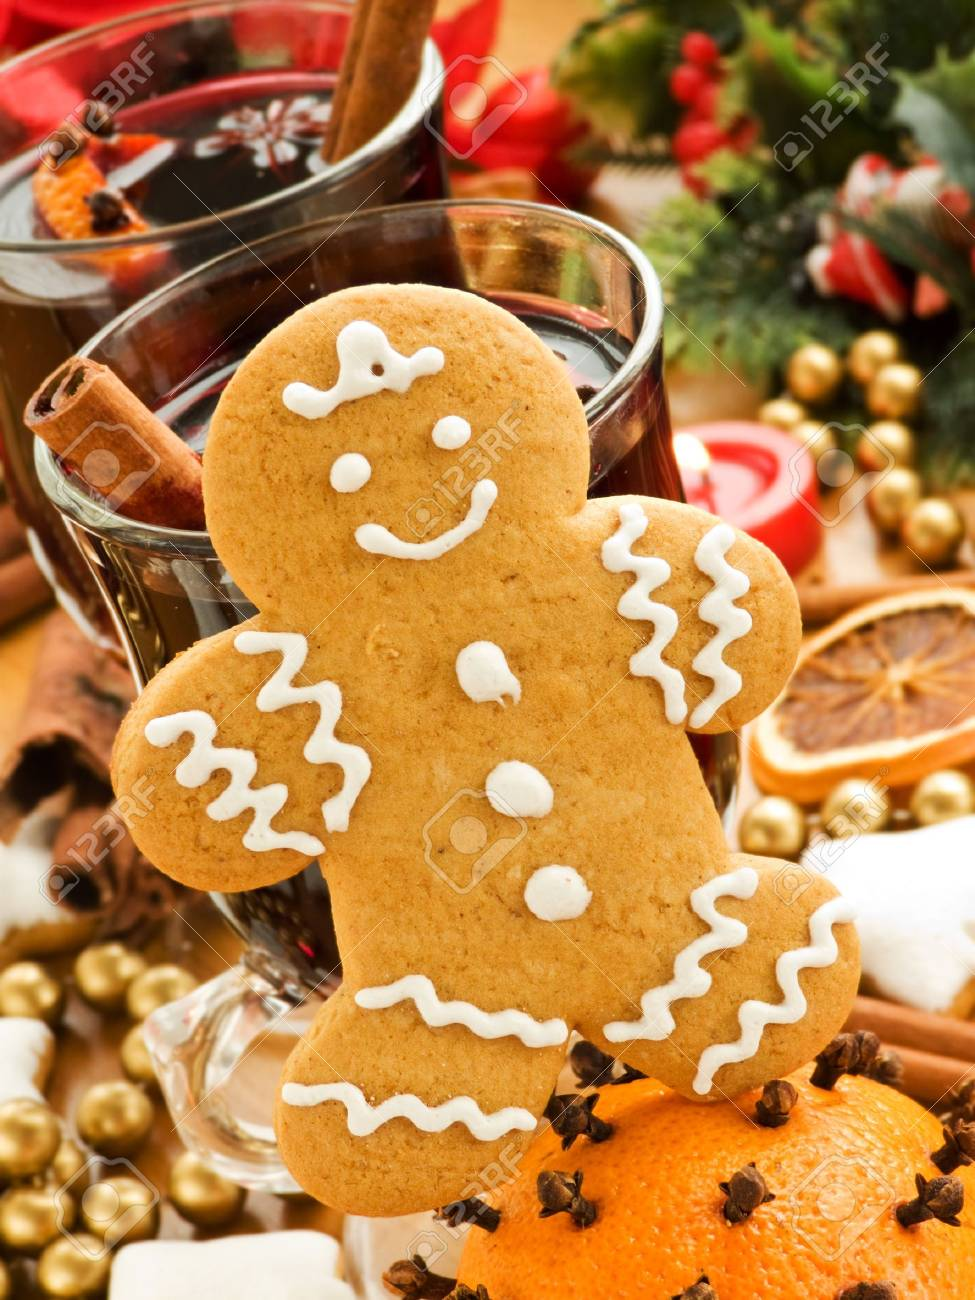 Mulled wine and gingerbread cookie. Shallow dof. Stock Photo - 8210819